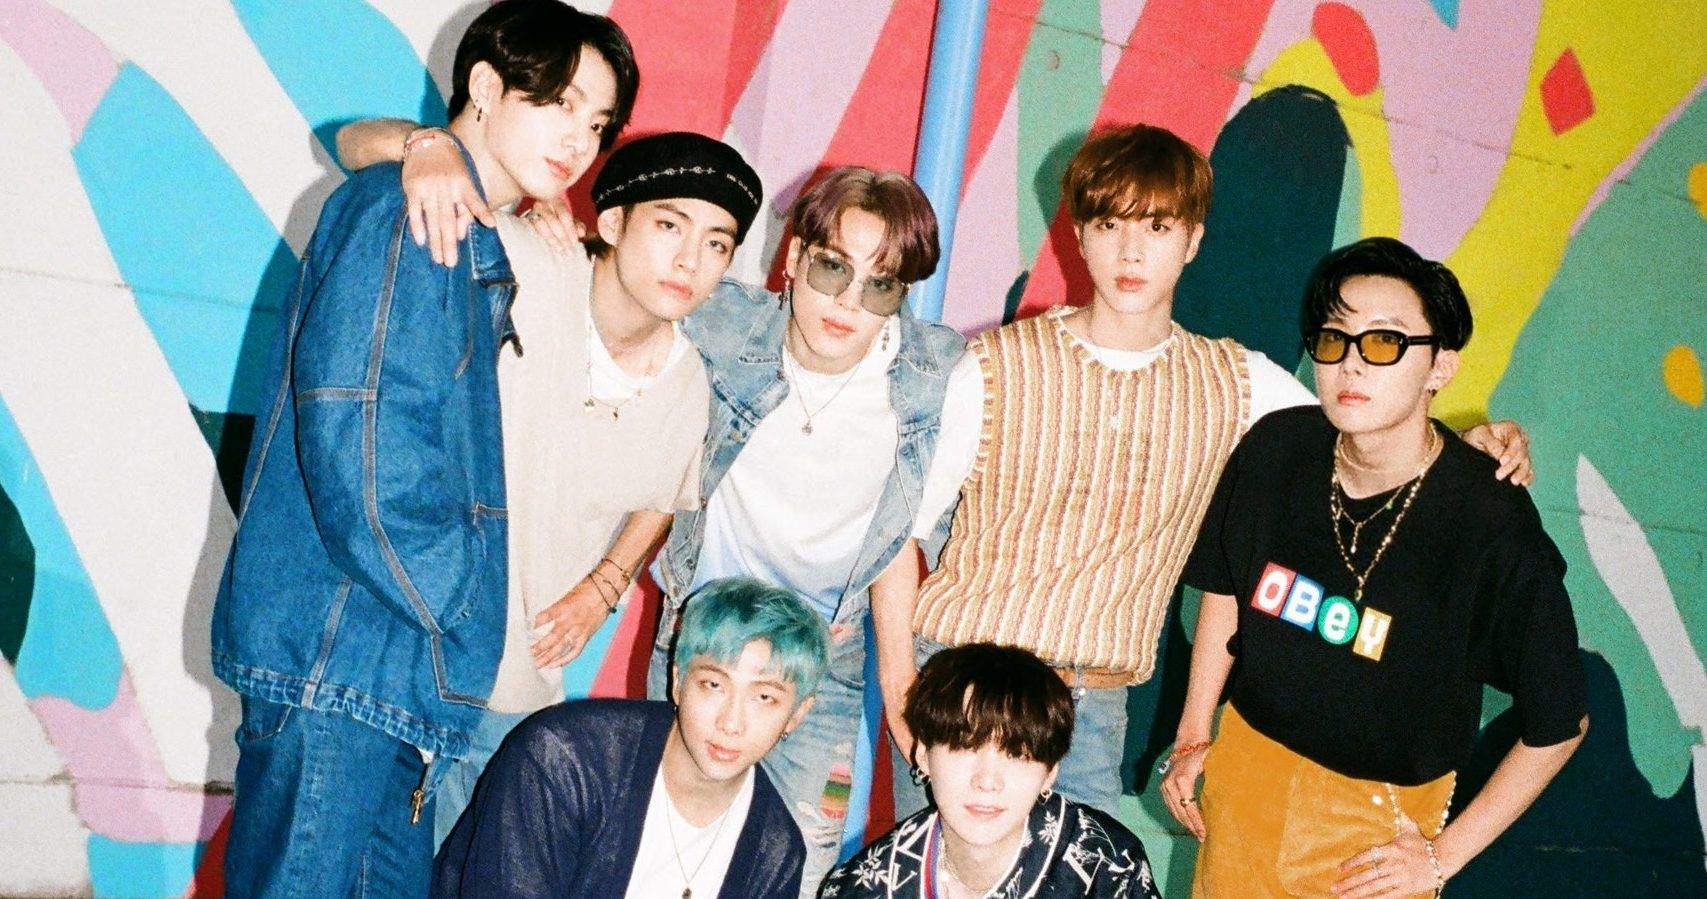 'Dynamite' By BTS Becomes The Fastest Song By A Group To Hit 100 Million Streams On Spotify